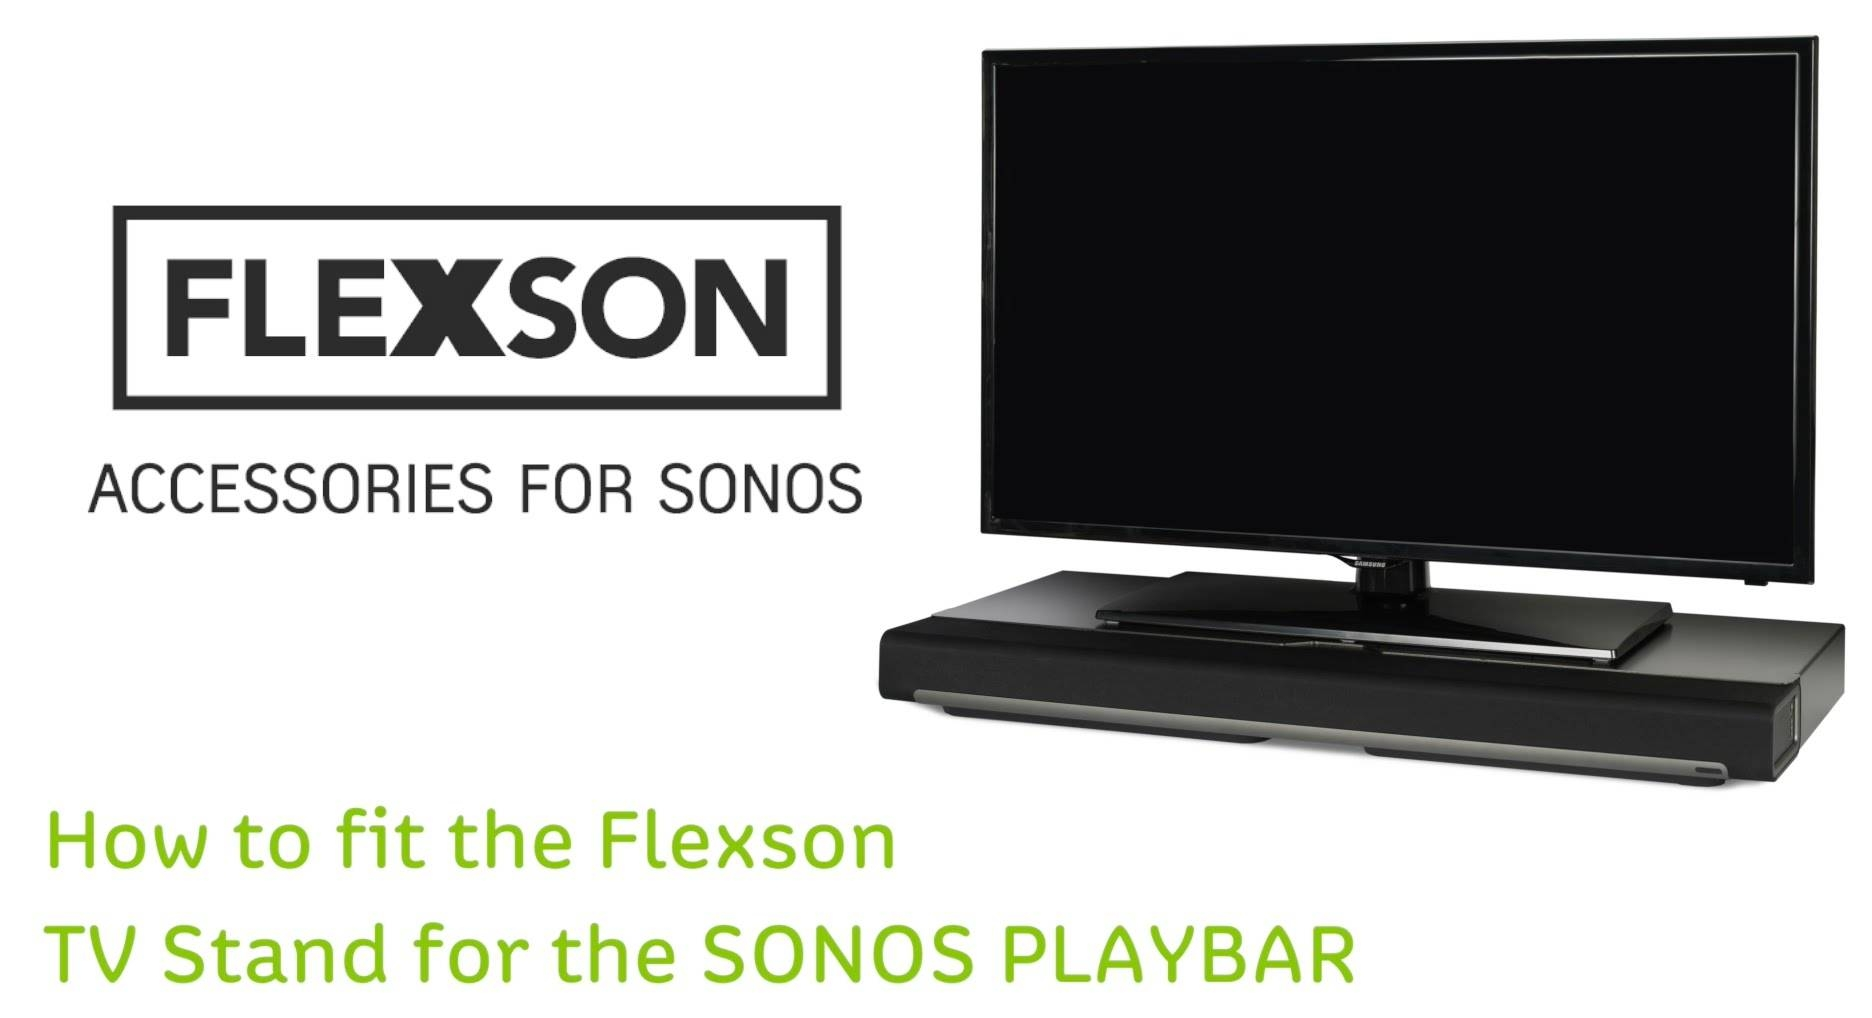 How To Fit The Flexson Tv Stand For The Sonos Playbar – Youtube Inside Sonos Tv Stands (View 8 of 15)